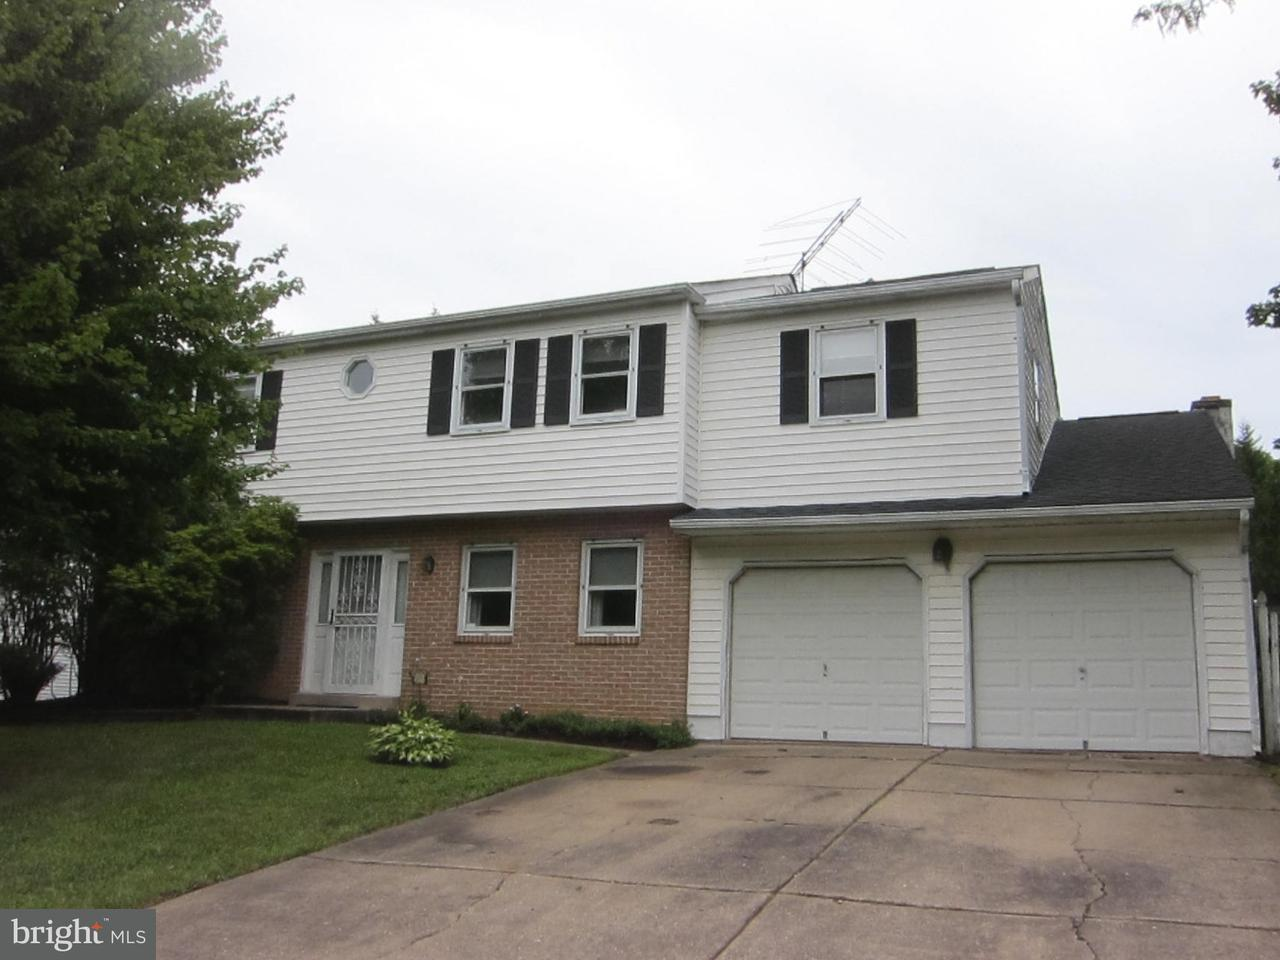 134  Knightsbridge Yardley , PA 19067